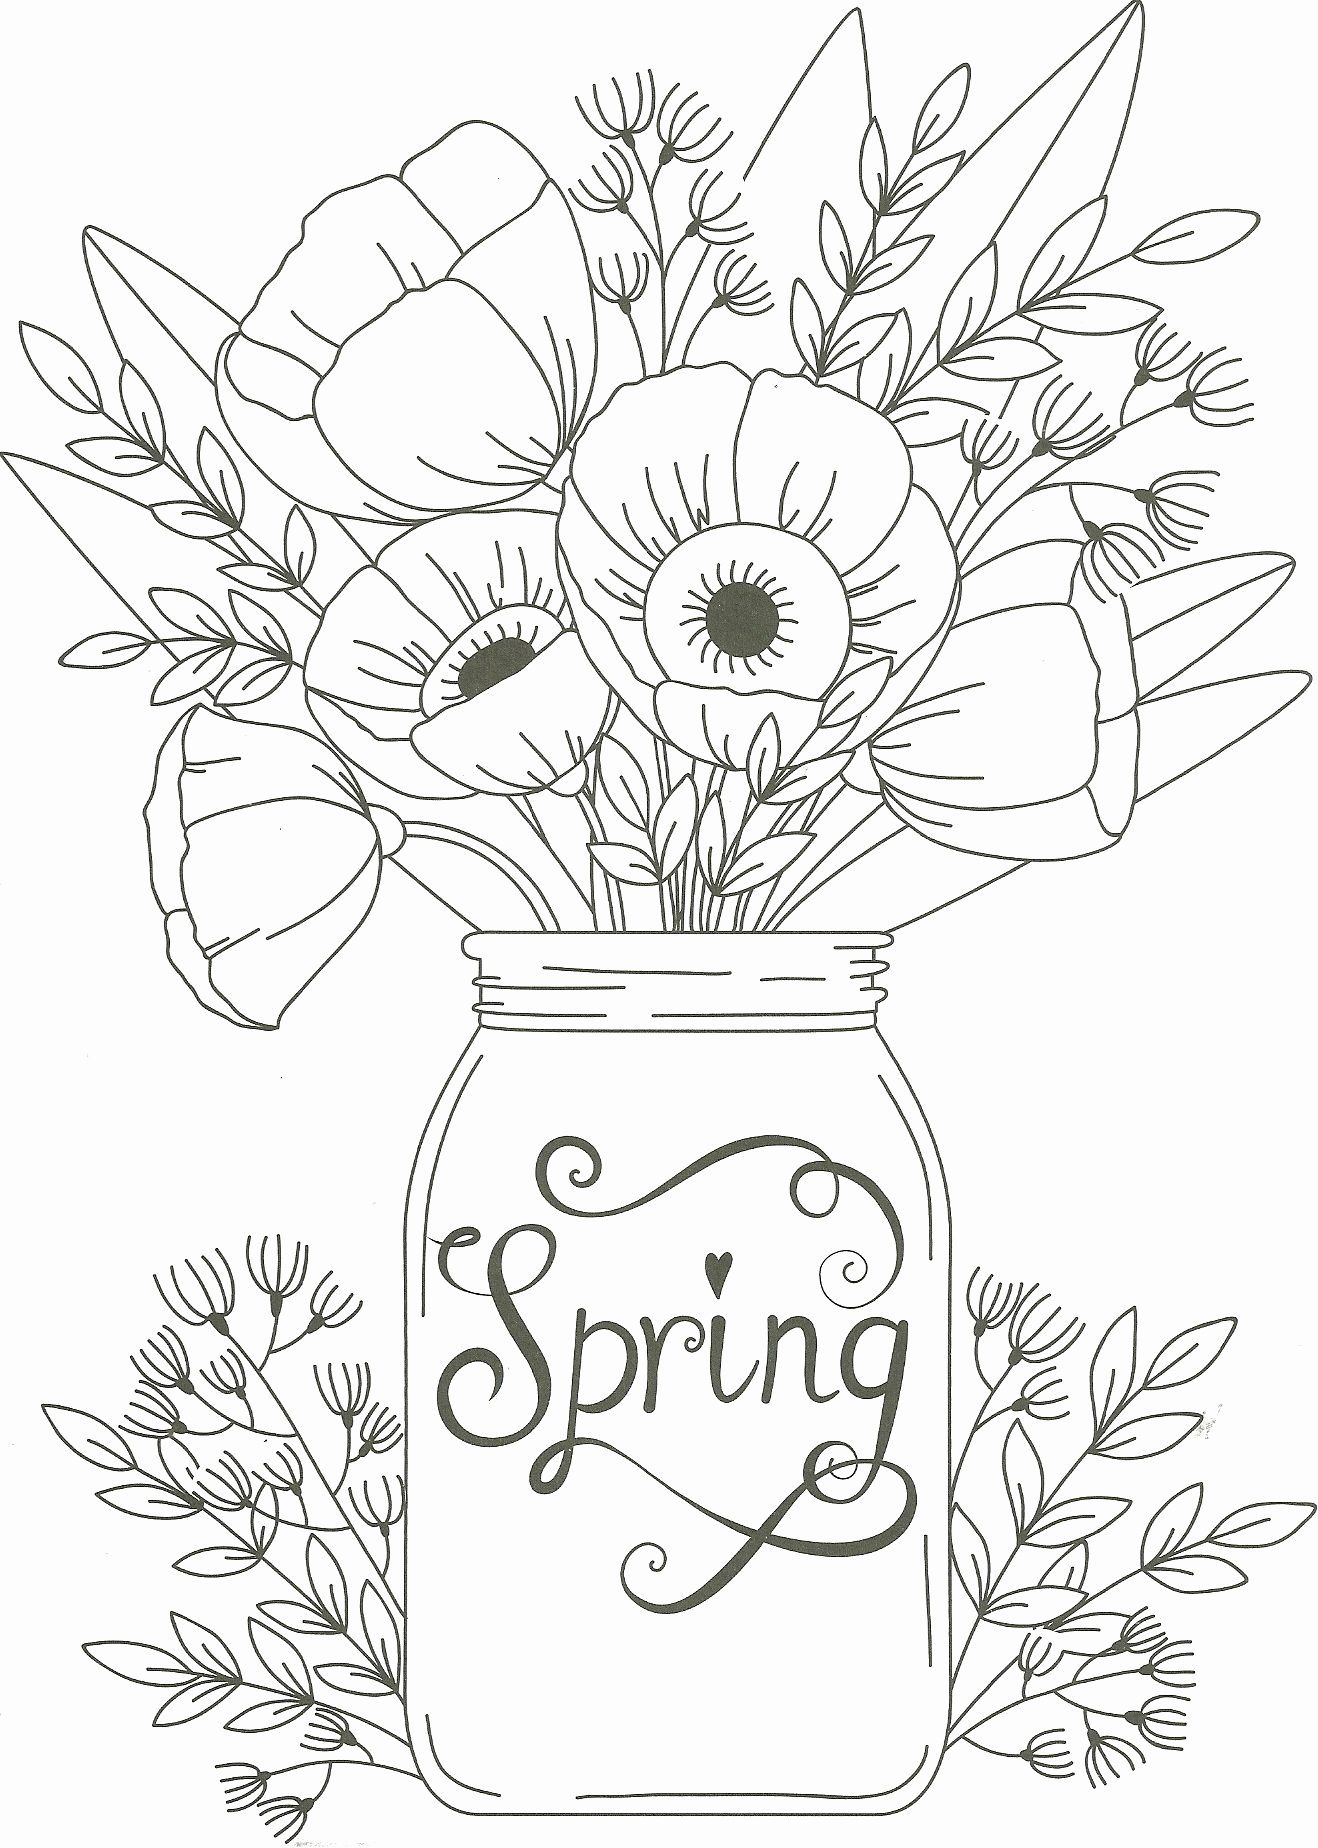 Spring Coloring Sheets For Adults In With Images